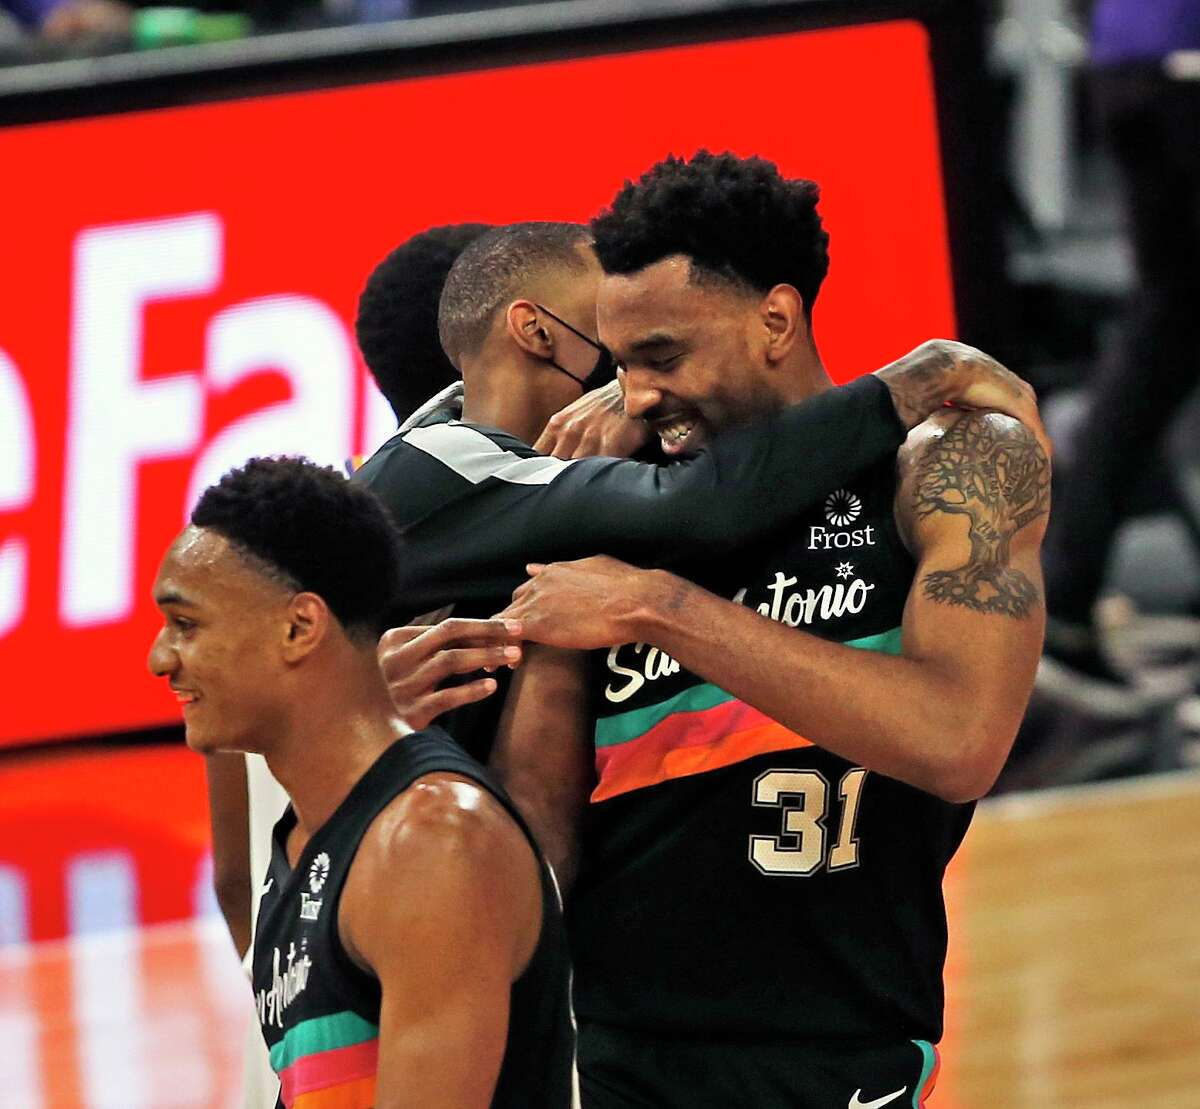 SAN ANTONIO, TX - MAY 16: Keita Bates-Diop #31 of the San Antonio Spurs is hugged by Dejounte Murray #5 after the basket put the Spurs ahead of the Phoenix Suns with second remaining in the second half at AT&T Center on May 16, 2021 in San Antonio, Texas. NOTE TO USER: User expressly acknowledges and agrees that , by downloading and or using this photograph, User is consenting to the terms and conditions of the Getty Images License Agreement. (Photo by Ronald Cortes/Getty Images)